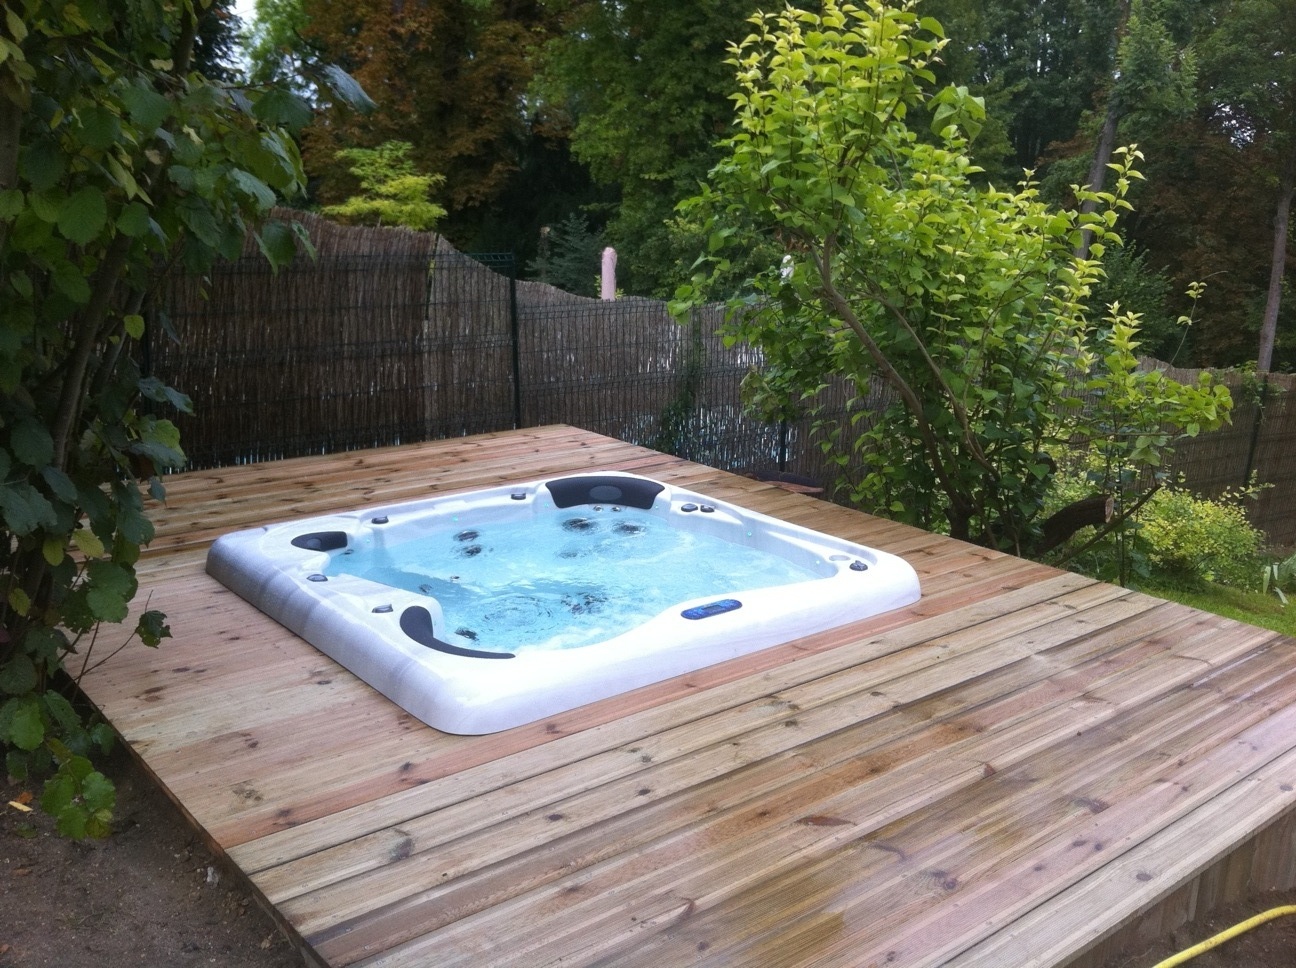 Installation finie d'un spa